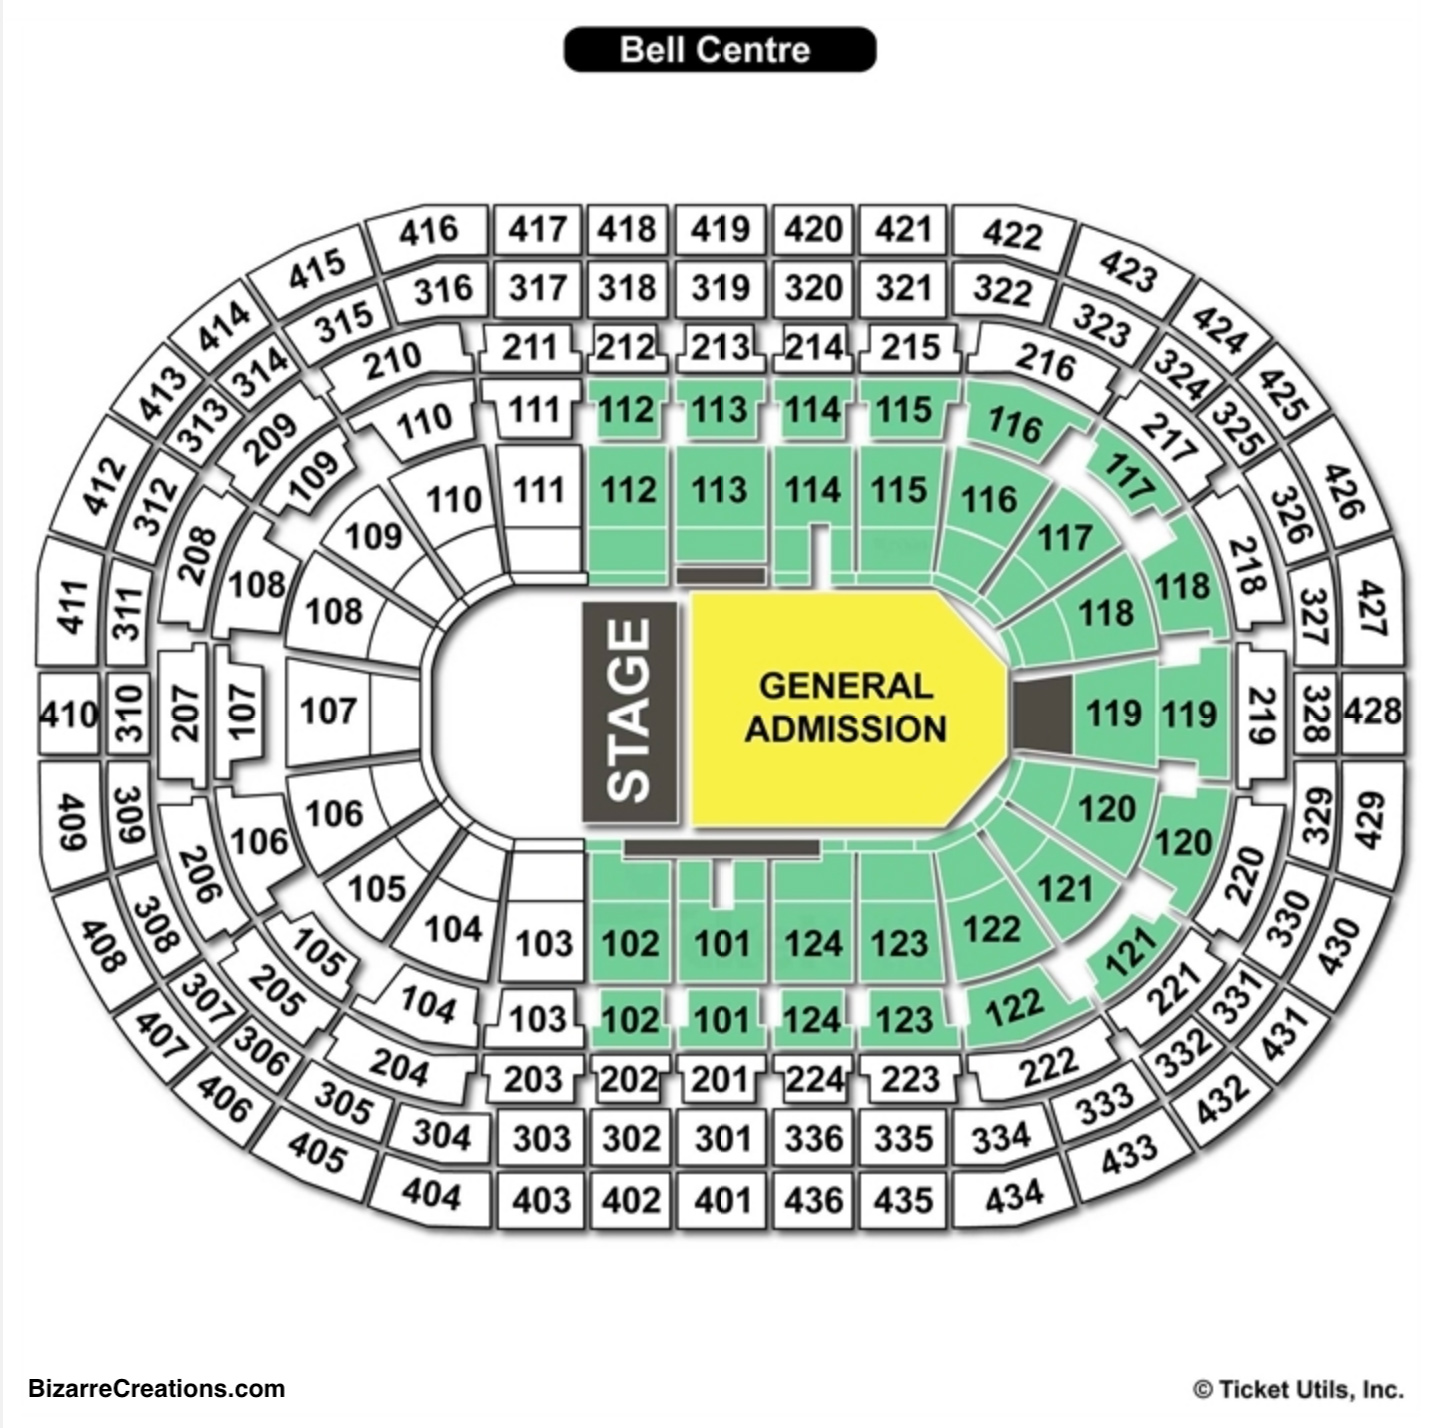 Bell Centre Concert Seating Chart